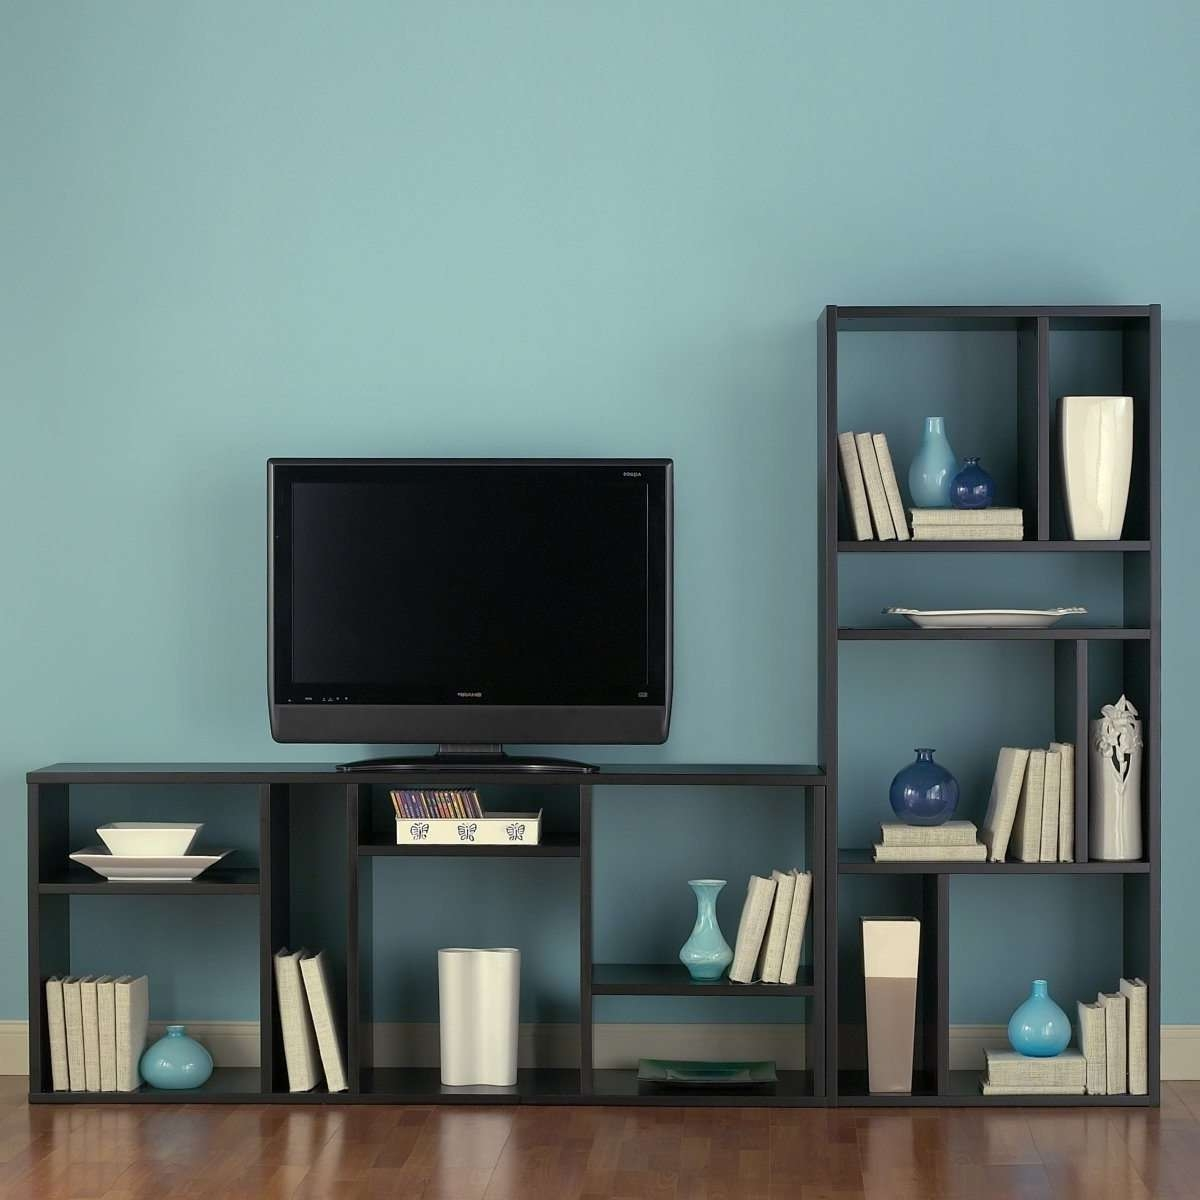 Furniture Home: Tv Stand Bookcase Combo Stands With Glass Doors With Tv Stands Bookshelf Combo (View 3 of 15)